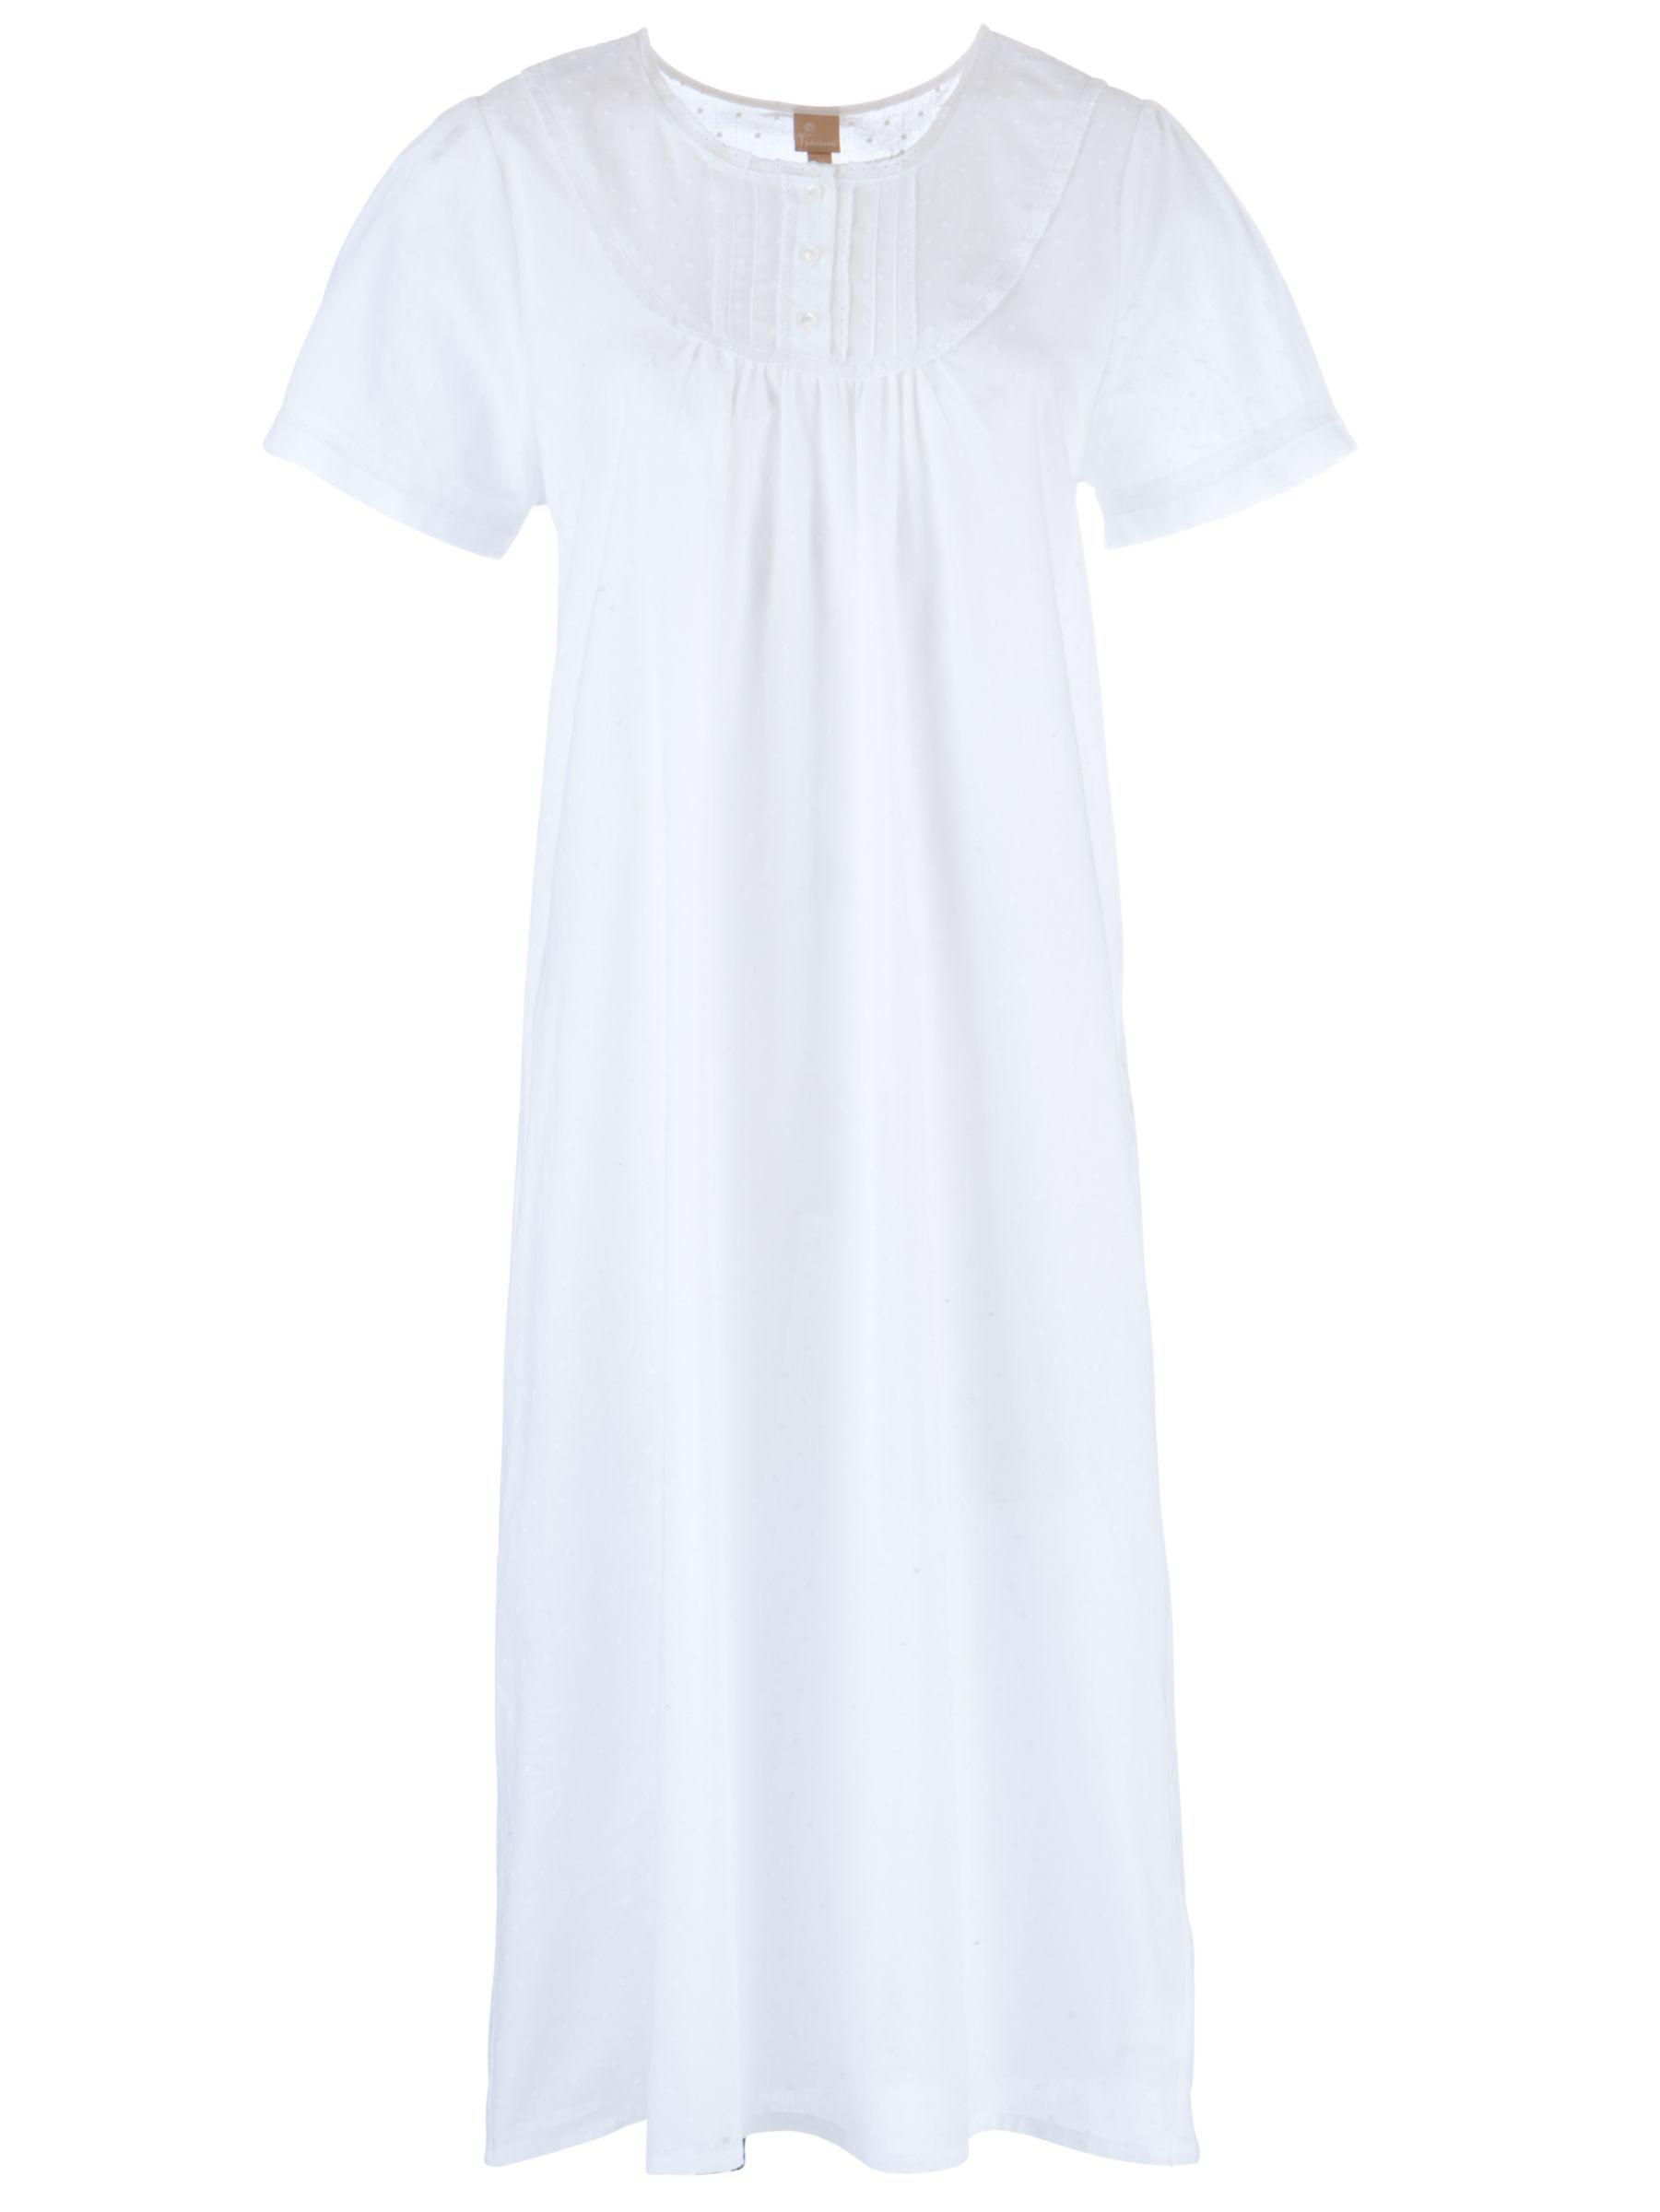 9b27f42ee8 John Lewis Pilli Cotton Nightdress in White - Lyst